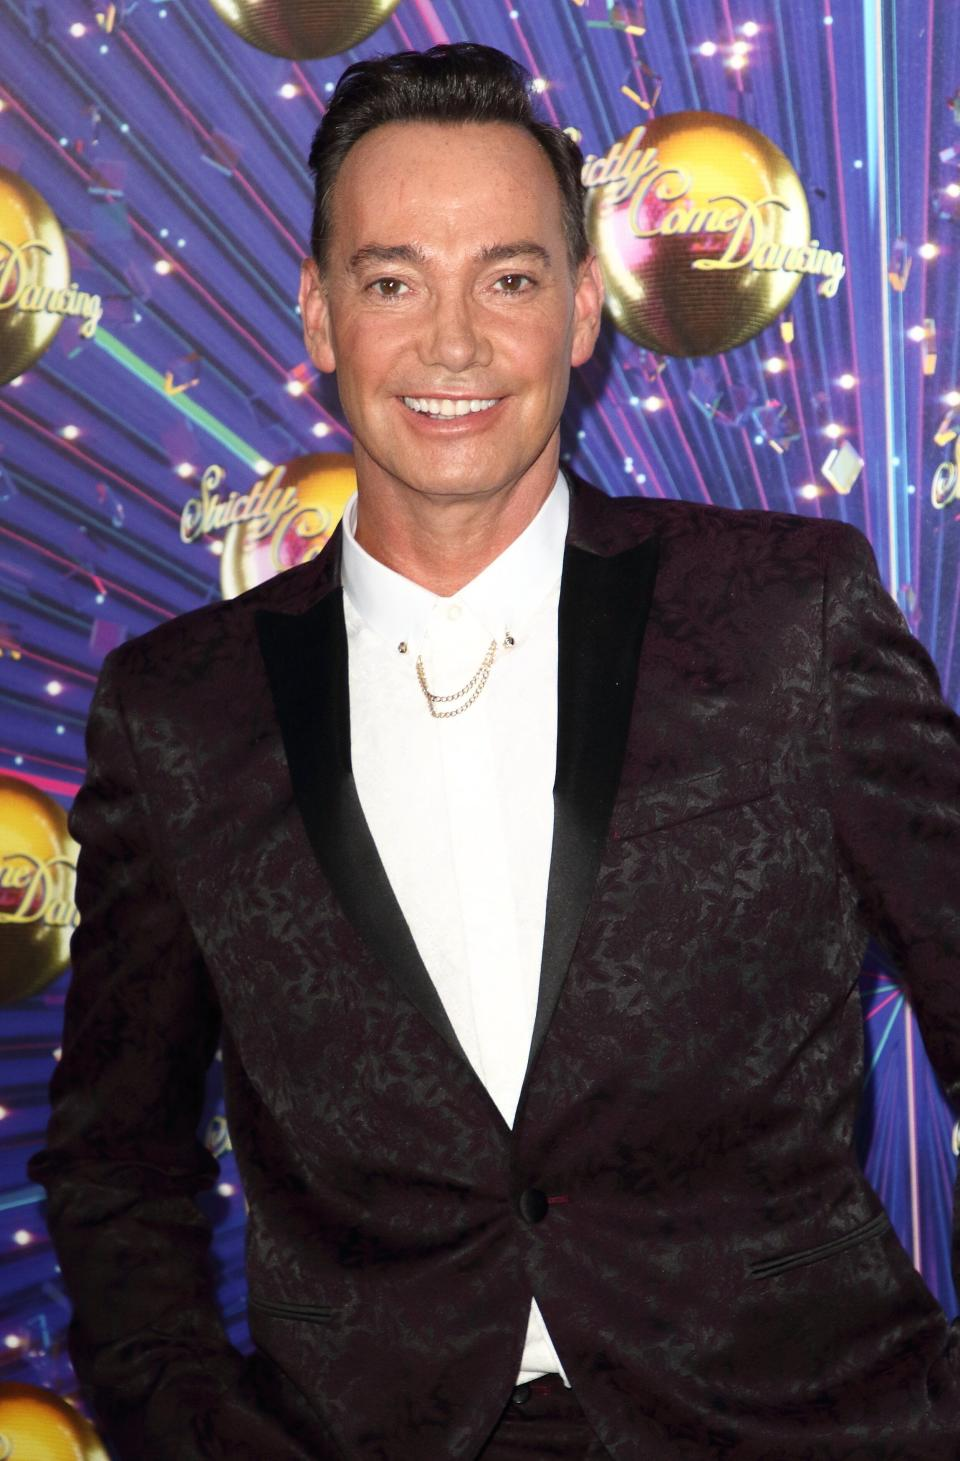 Craig Revel Horwood  (Photo: SIPA USA/PA Images)